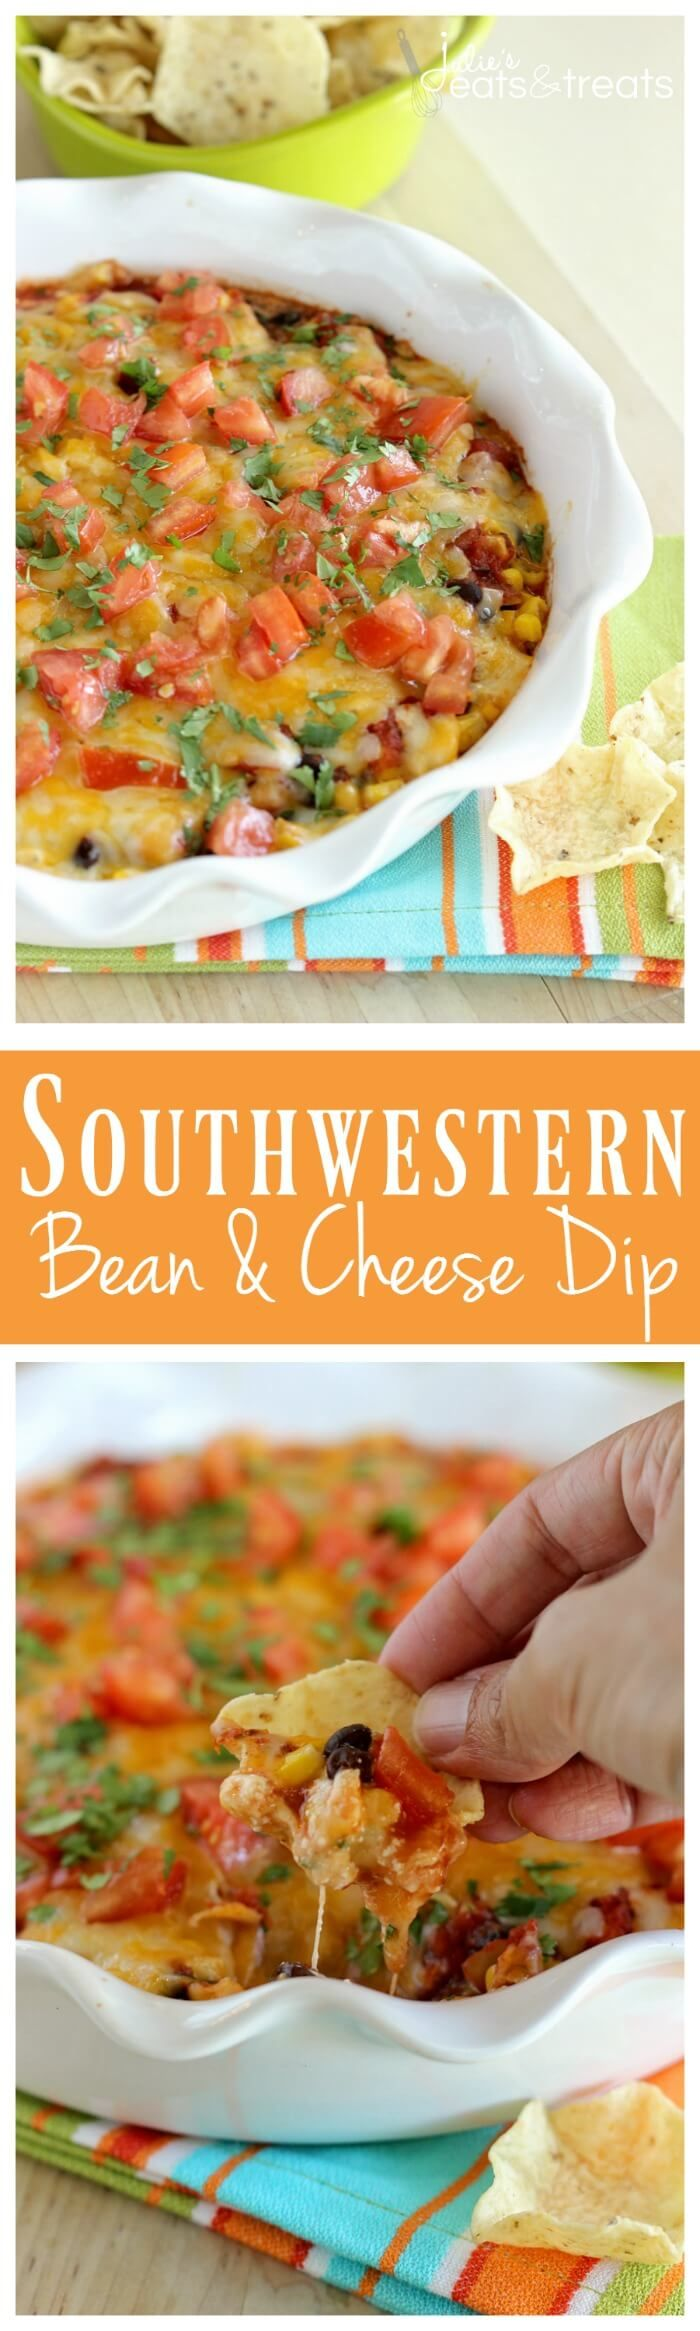 Southwestern Bean & Cheese Dip – A quick oven-baked dip made with layers of cream cheese, salsa, black beans, corn, melted cheese, tomatoes, and cilantro!